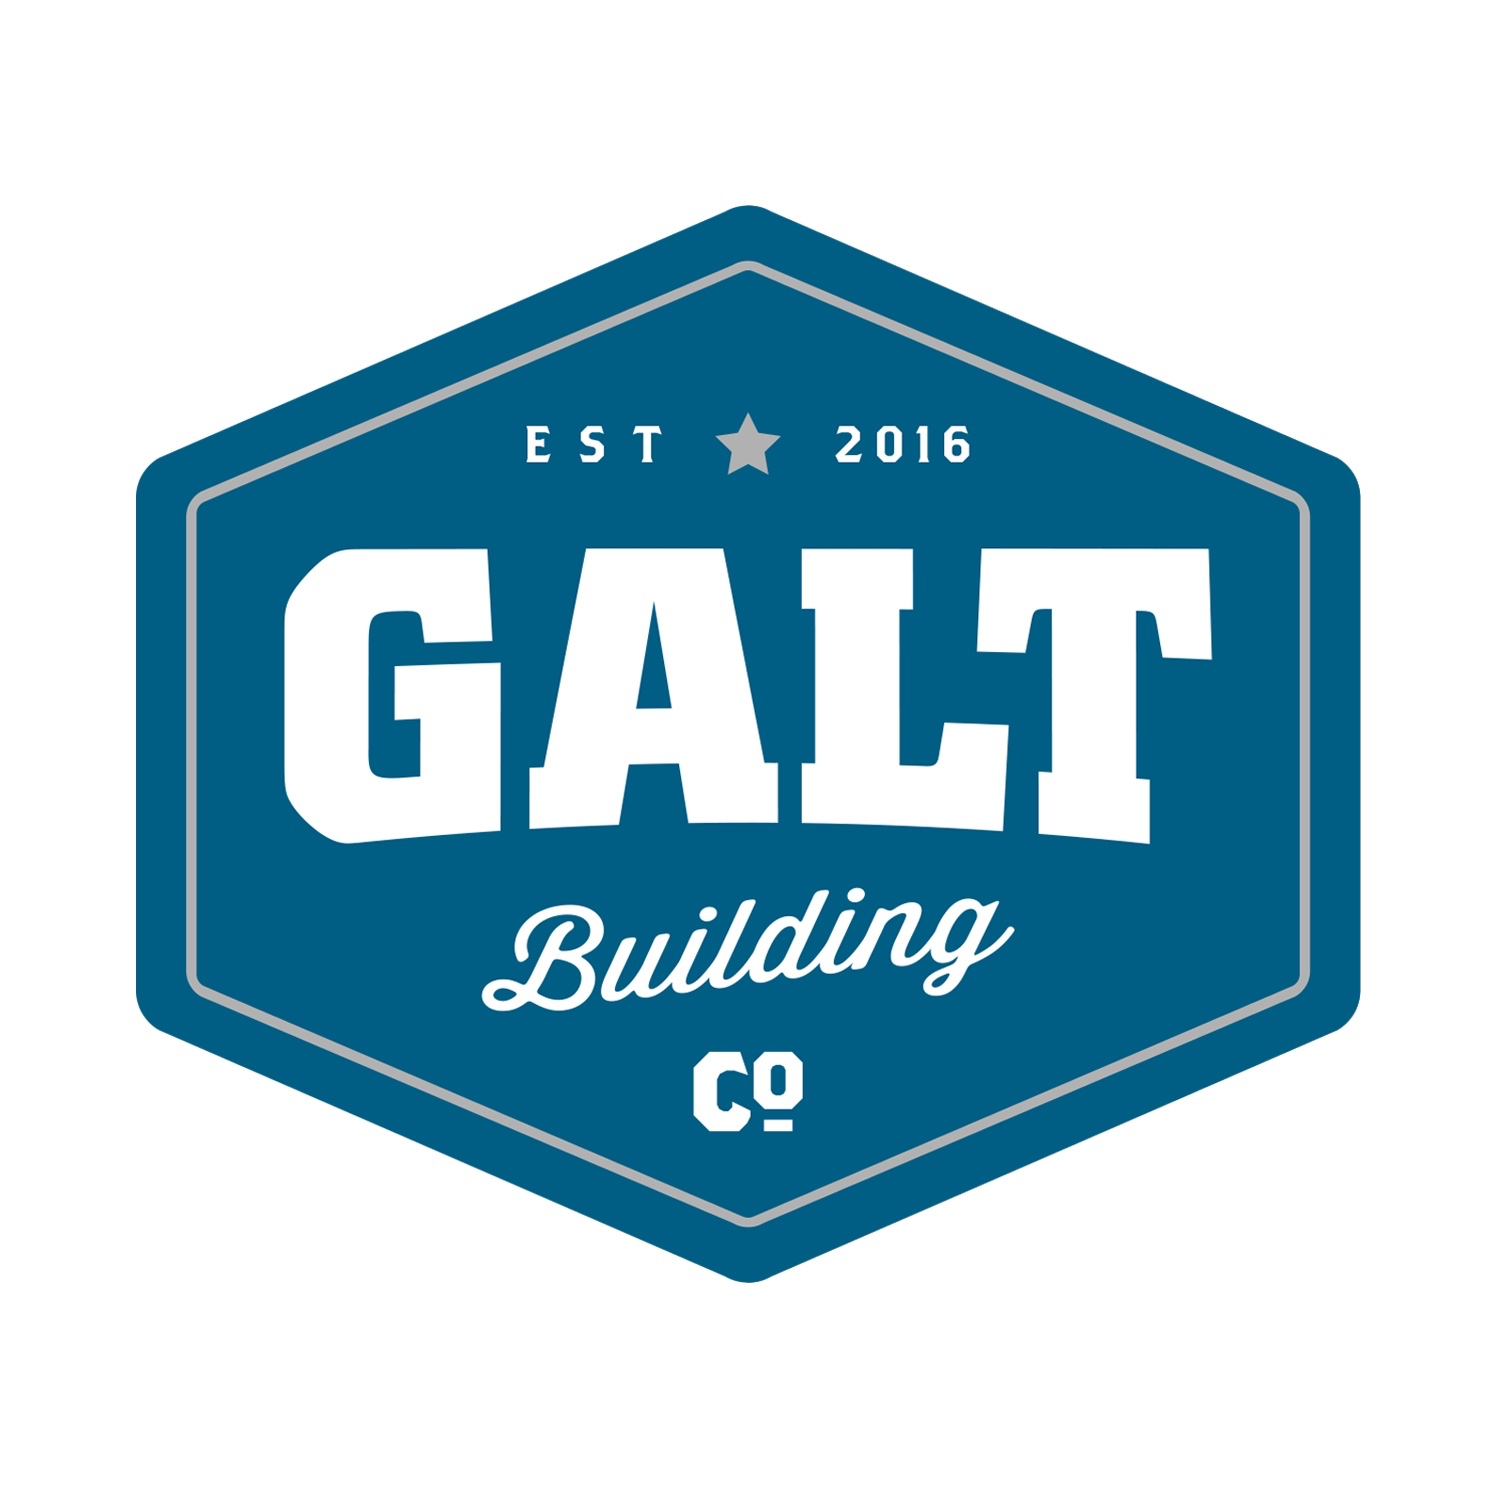 Galt Building Co. Logo Design